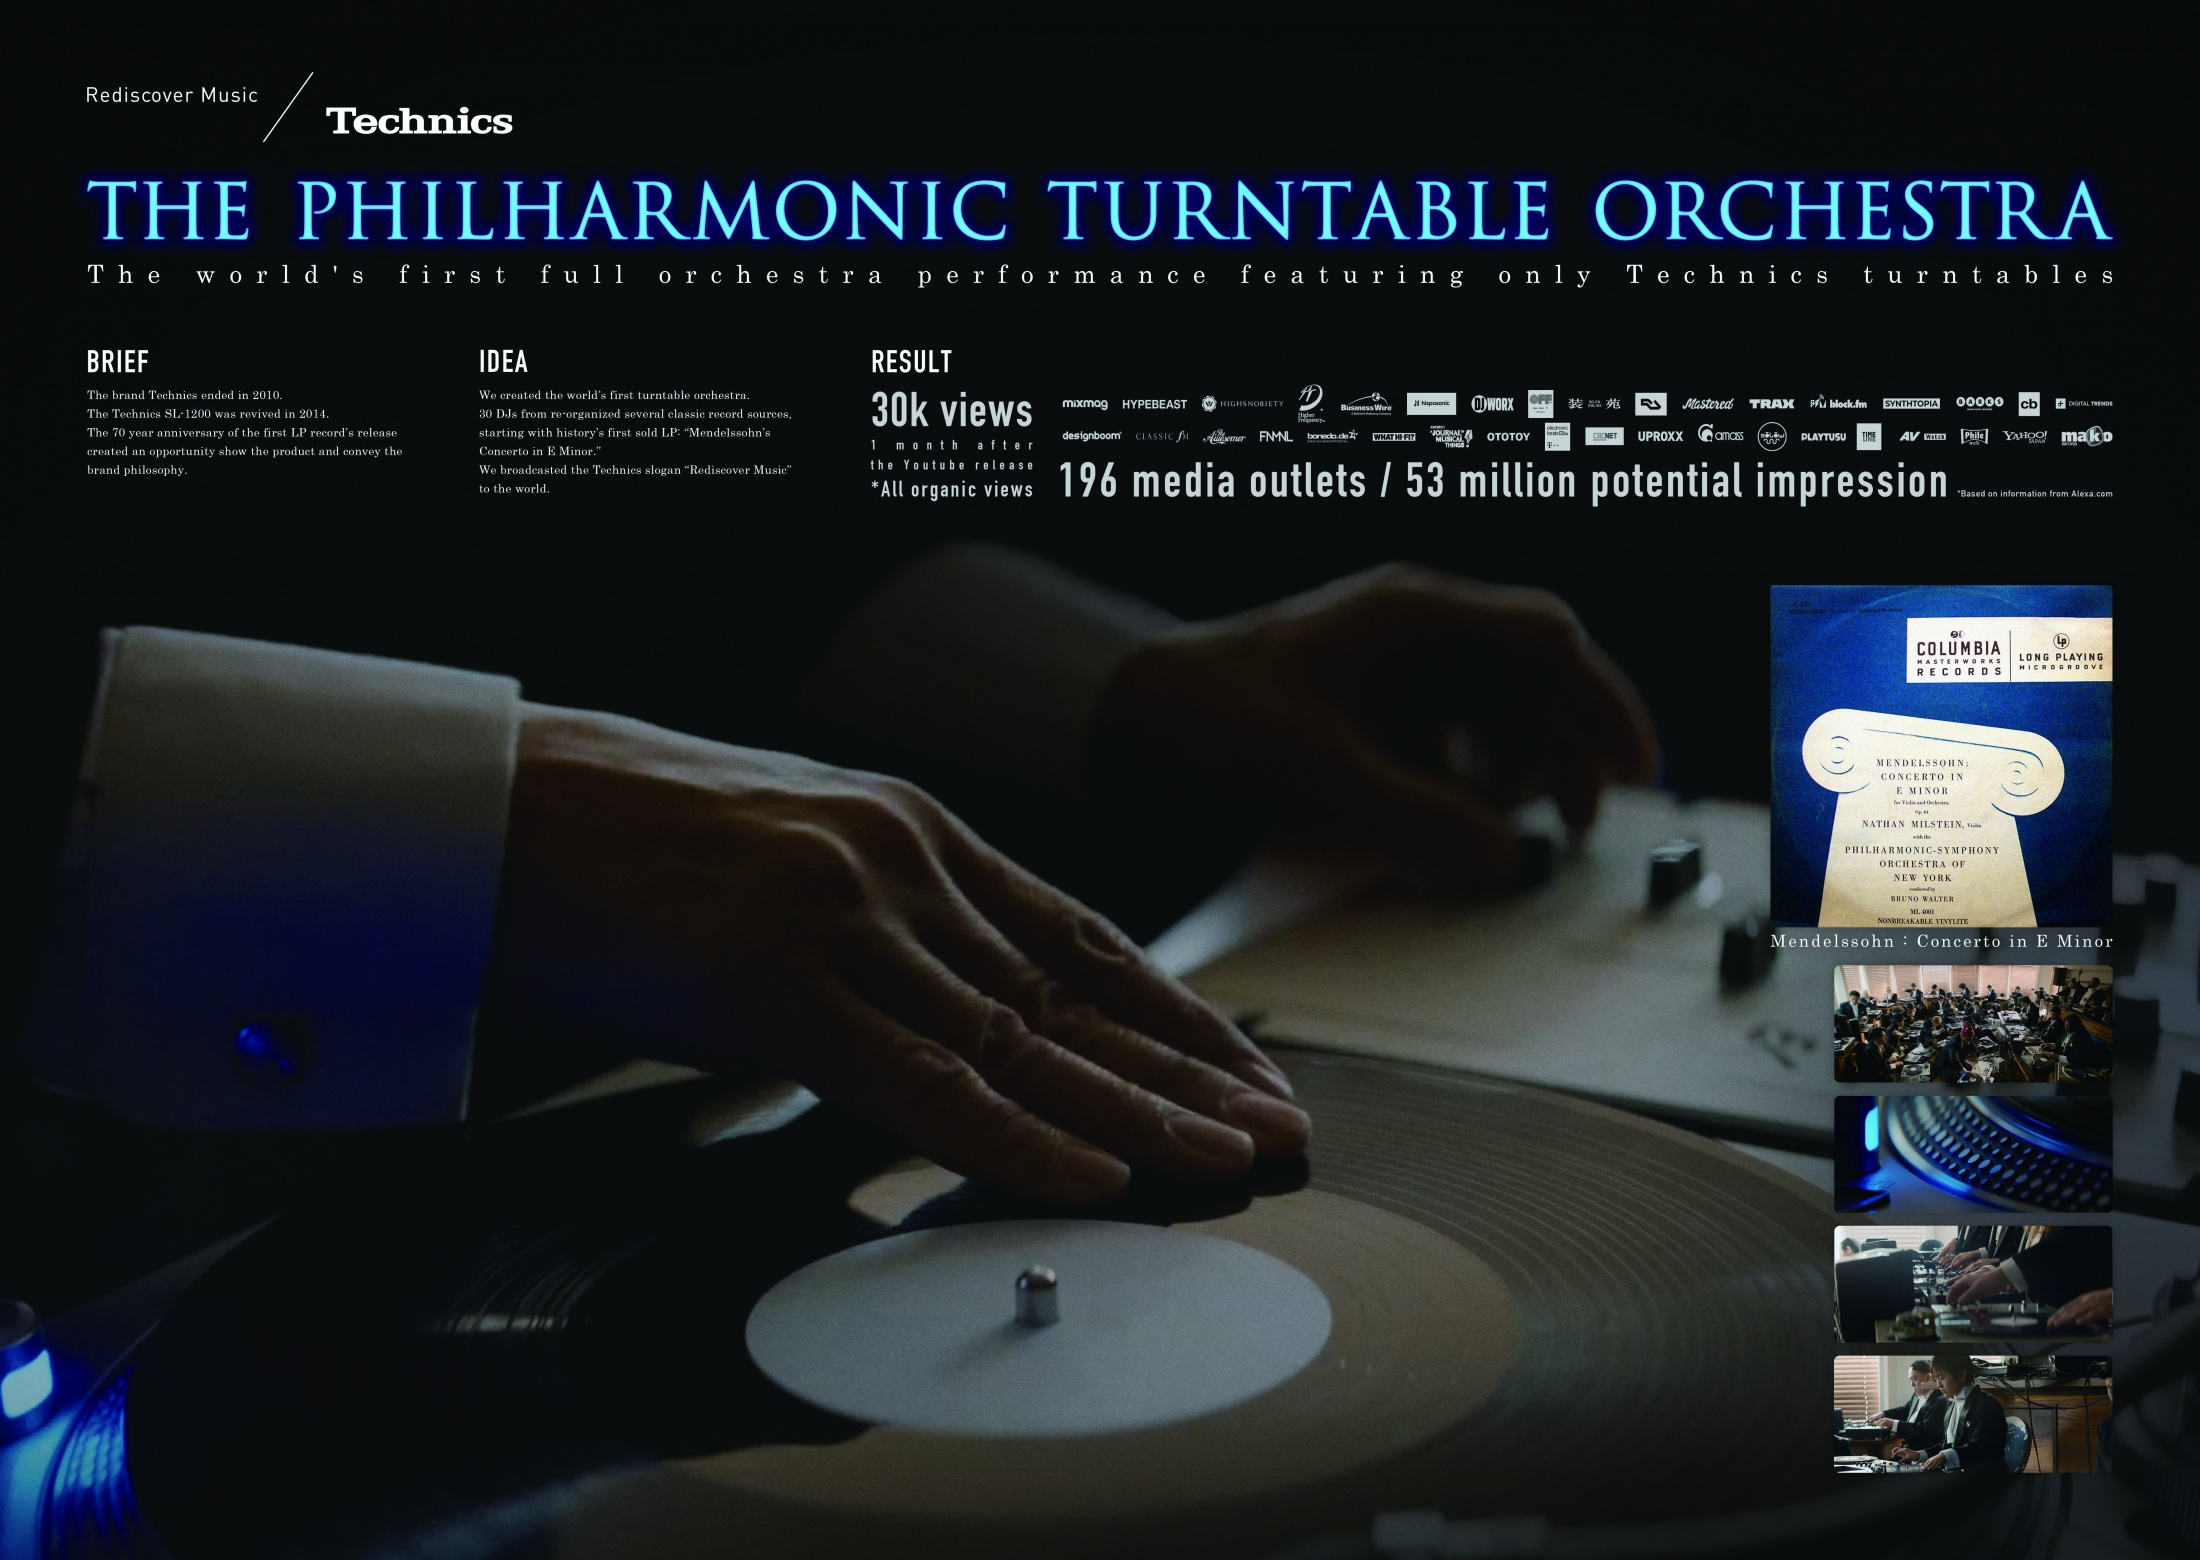 Thumbnail for THE PHILHARMONIC TURNTABLE ORCHESTRA